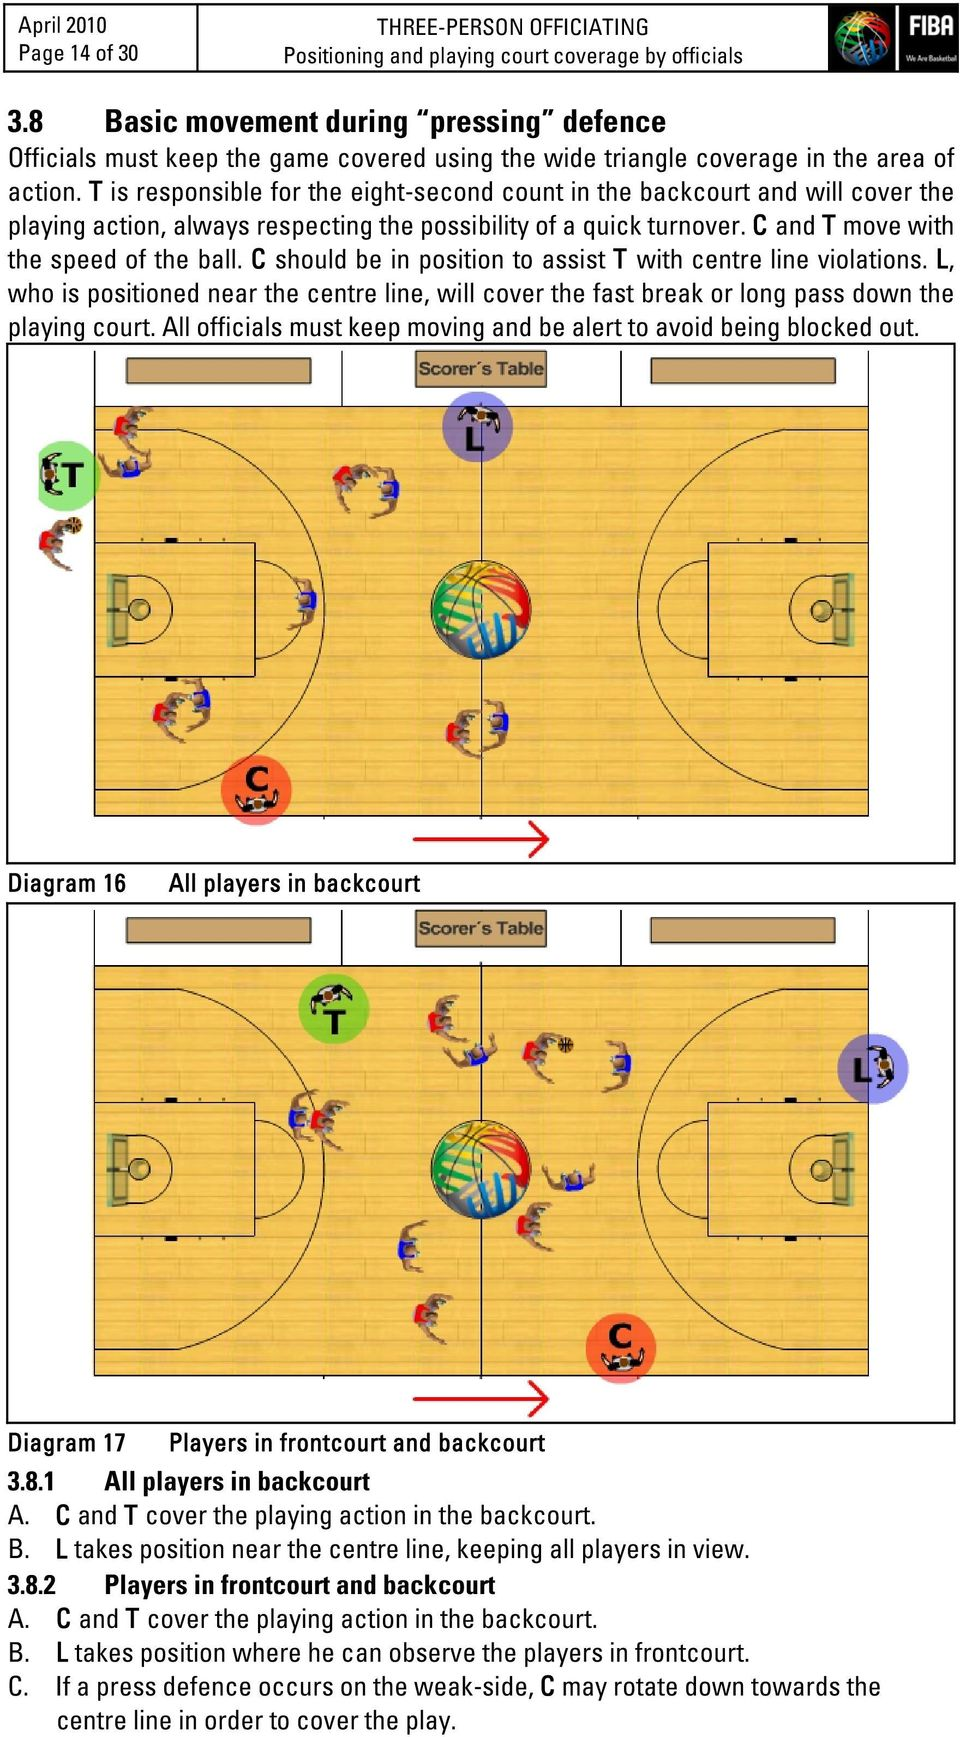 T is responsible for the eight-second count in the backcourt and will cover the playing action, always respecting the possibility of a quick turnover. C and T move with the speed of the ball.